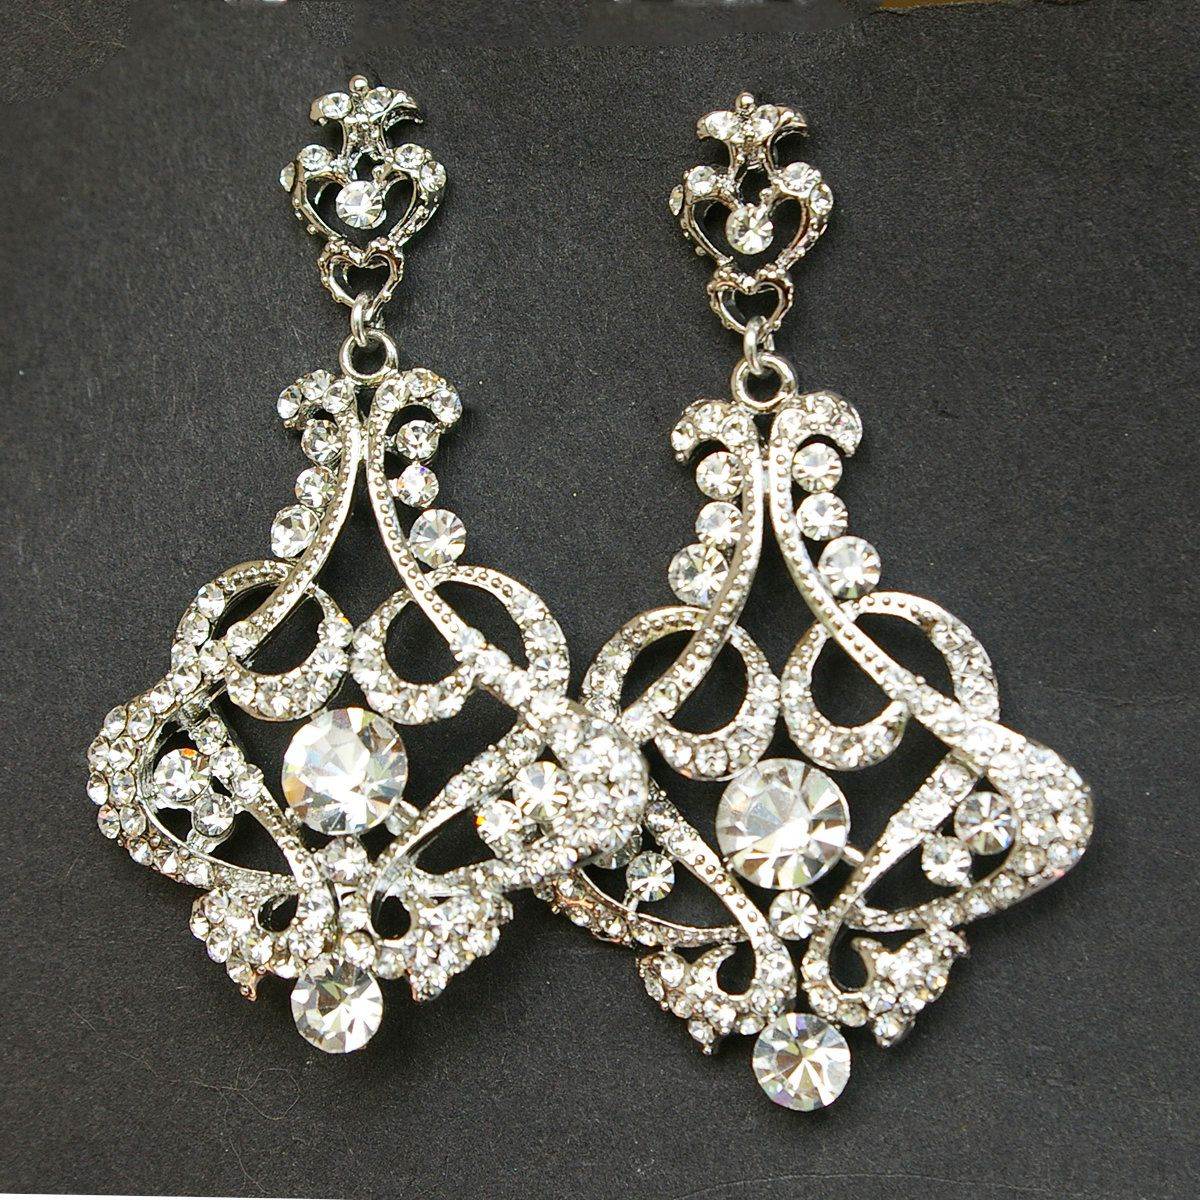 Crystal chandelier bridal earrings vintage wedding earrings crystal chandelier bridal earrings vintage wedding earrings statement bridal earrings art deco wedding jewelry cressida arubaitofo Choice Image